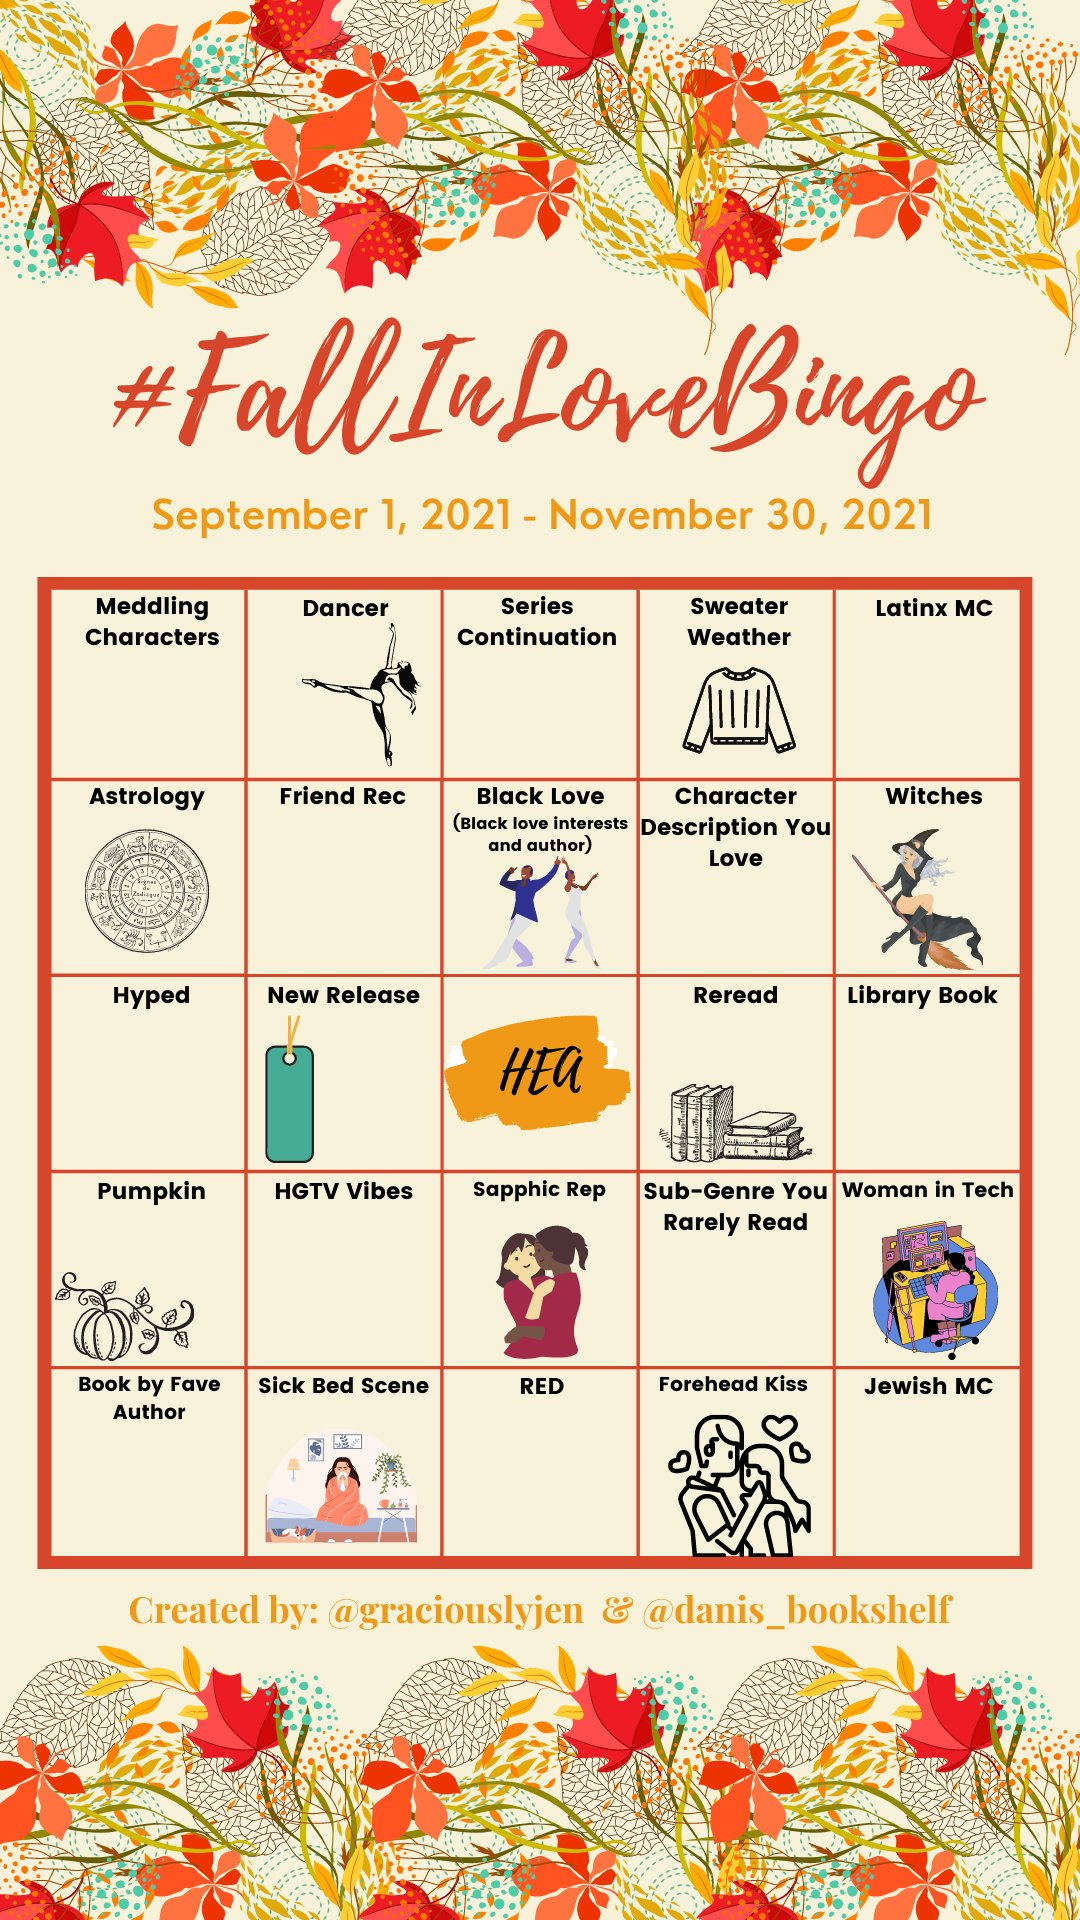 #FallInLoveBingo board From September 1, 2021 to November 30, 2021 Row 1: Meddling Characters, Dancer (with image of ballerina), Series Continuation, Sweater Weather (with image of a sweater), and Latinx MC Row 2: Astrology (with image of astrological chart), Friend Rec, Black Love (Black love interests and author; with image of Black man and woman dancing together), Character Description You Love, Witches (with image of a white woman on a broomstick with a black pointy hat) Row 3: Hyped, New Release (with image of a bookmark), HEA, Reread (with an image of six books), Library Book Row 4: Pumpkin (with image of a pumpkin), HGTV Vibes, Sapphic Rec (with an image of two women in an embrace), Sub-genre You Rarely Read, Woman in Tech (with an image of a Black woman sitting at a computer) Row 5: Book by Fave Author, Sick Bed Scene (with an image of a woman sitting cross legged with a tissue on either a bed or couch wrapped in a blanket), RED, Forehead Kiss (with an image of a man kissing a woman on the forehead), and Jewish MC Created by: @GraciouslyJen and @Danis_Bookshelf